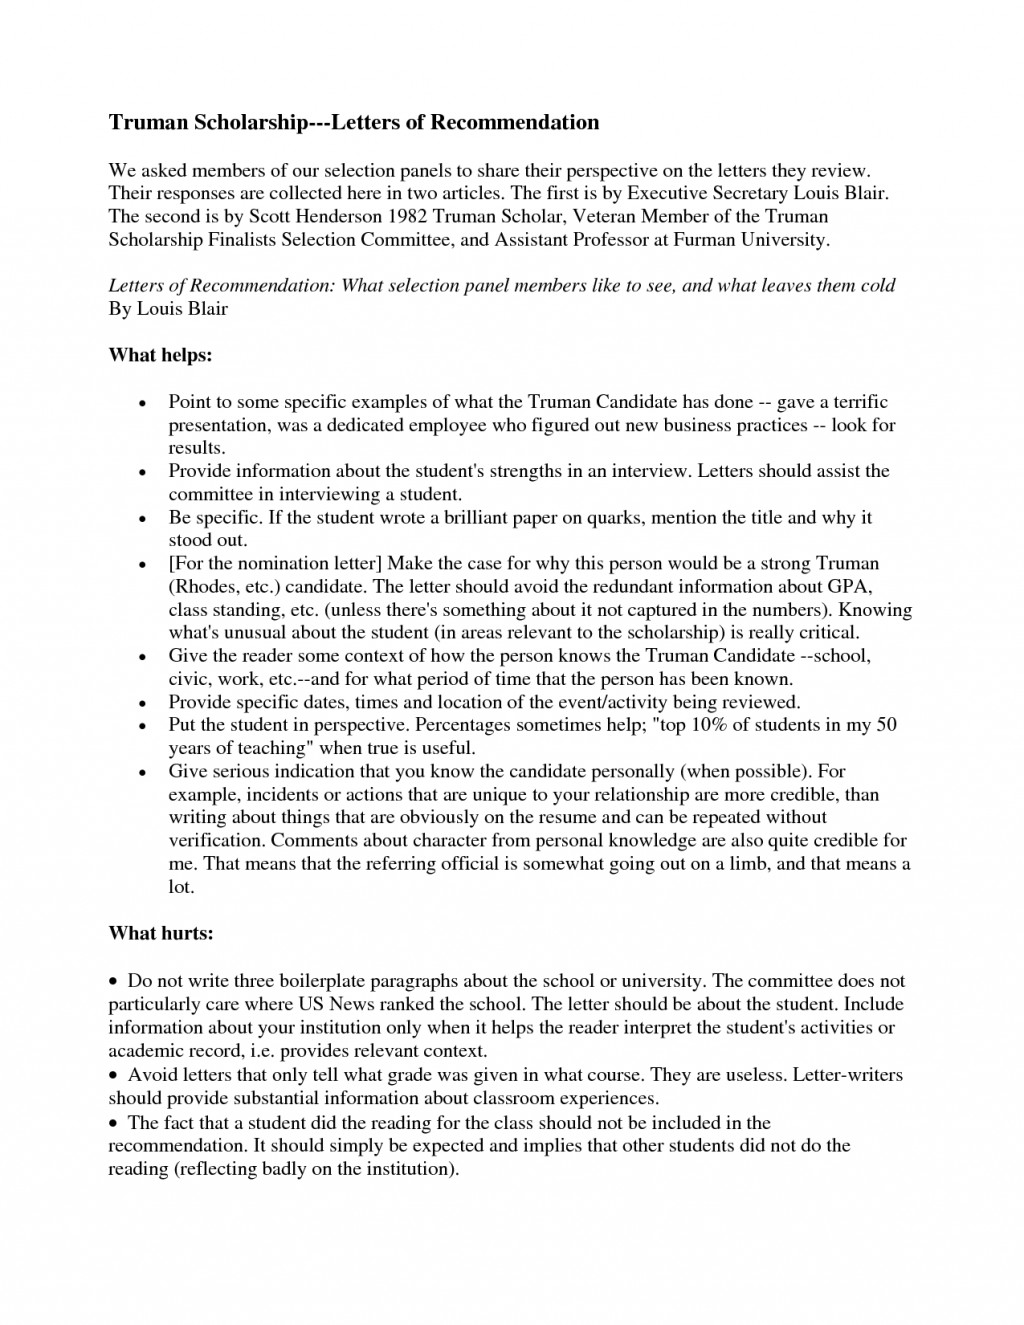 011 Essay Example Qualities Of Good Cover Letters With Letter And Scholarship Recommendation Hr0thxwq 1275x1650px What Are Formidable The A Leader Characteristics Pdf Introduction Make Large